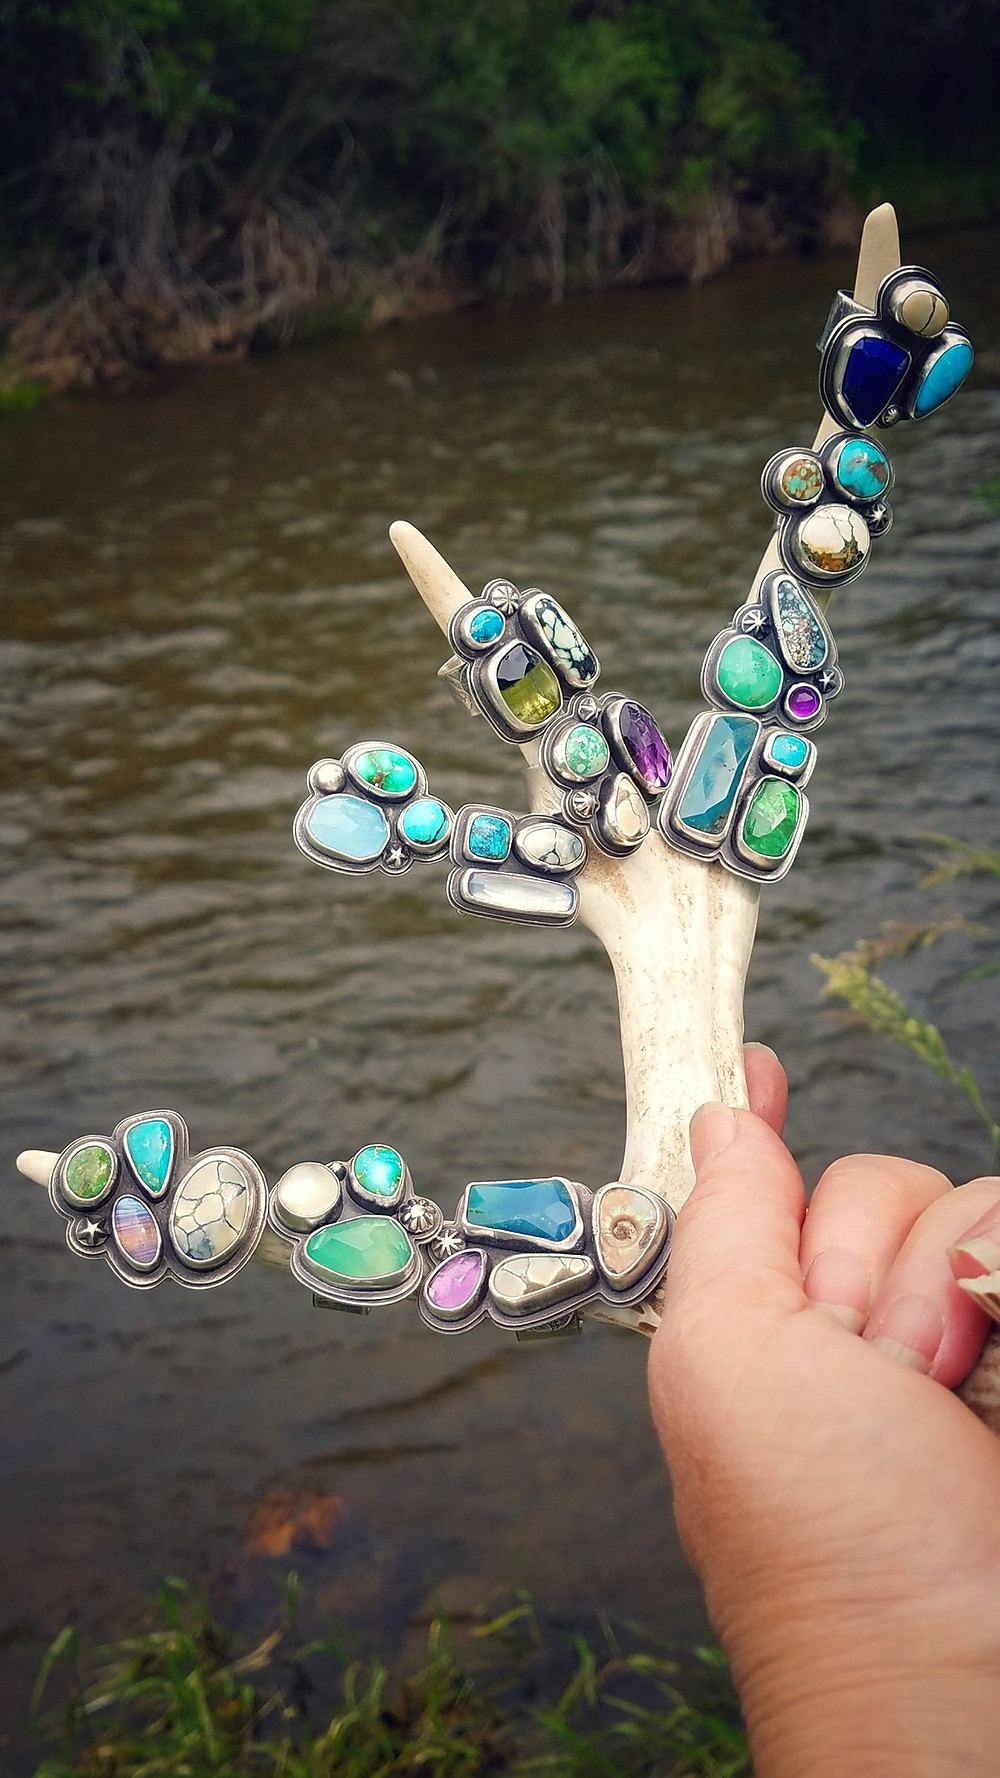 Deryn holds up a deer antler to the camera. On the prongs of the deer antler are 11 silver rings with precious stones in turquoise, blue, green, purple, white, and even a fossilized shell